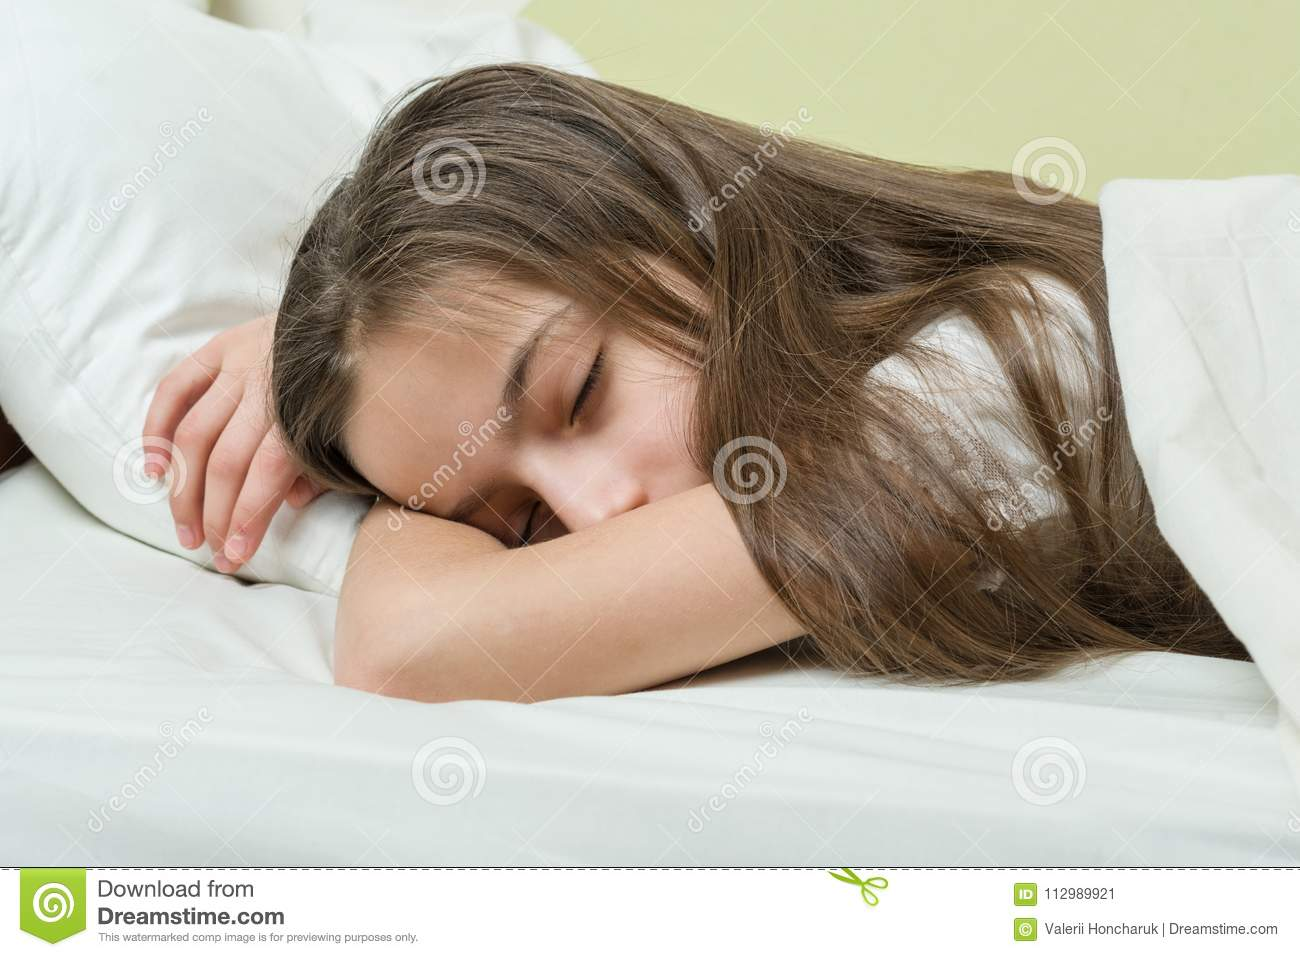 Girl child with long brown hair sleeping on a pillow in bed